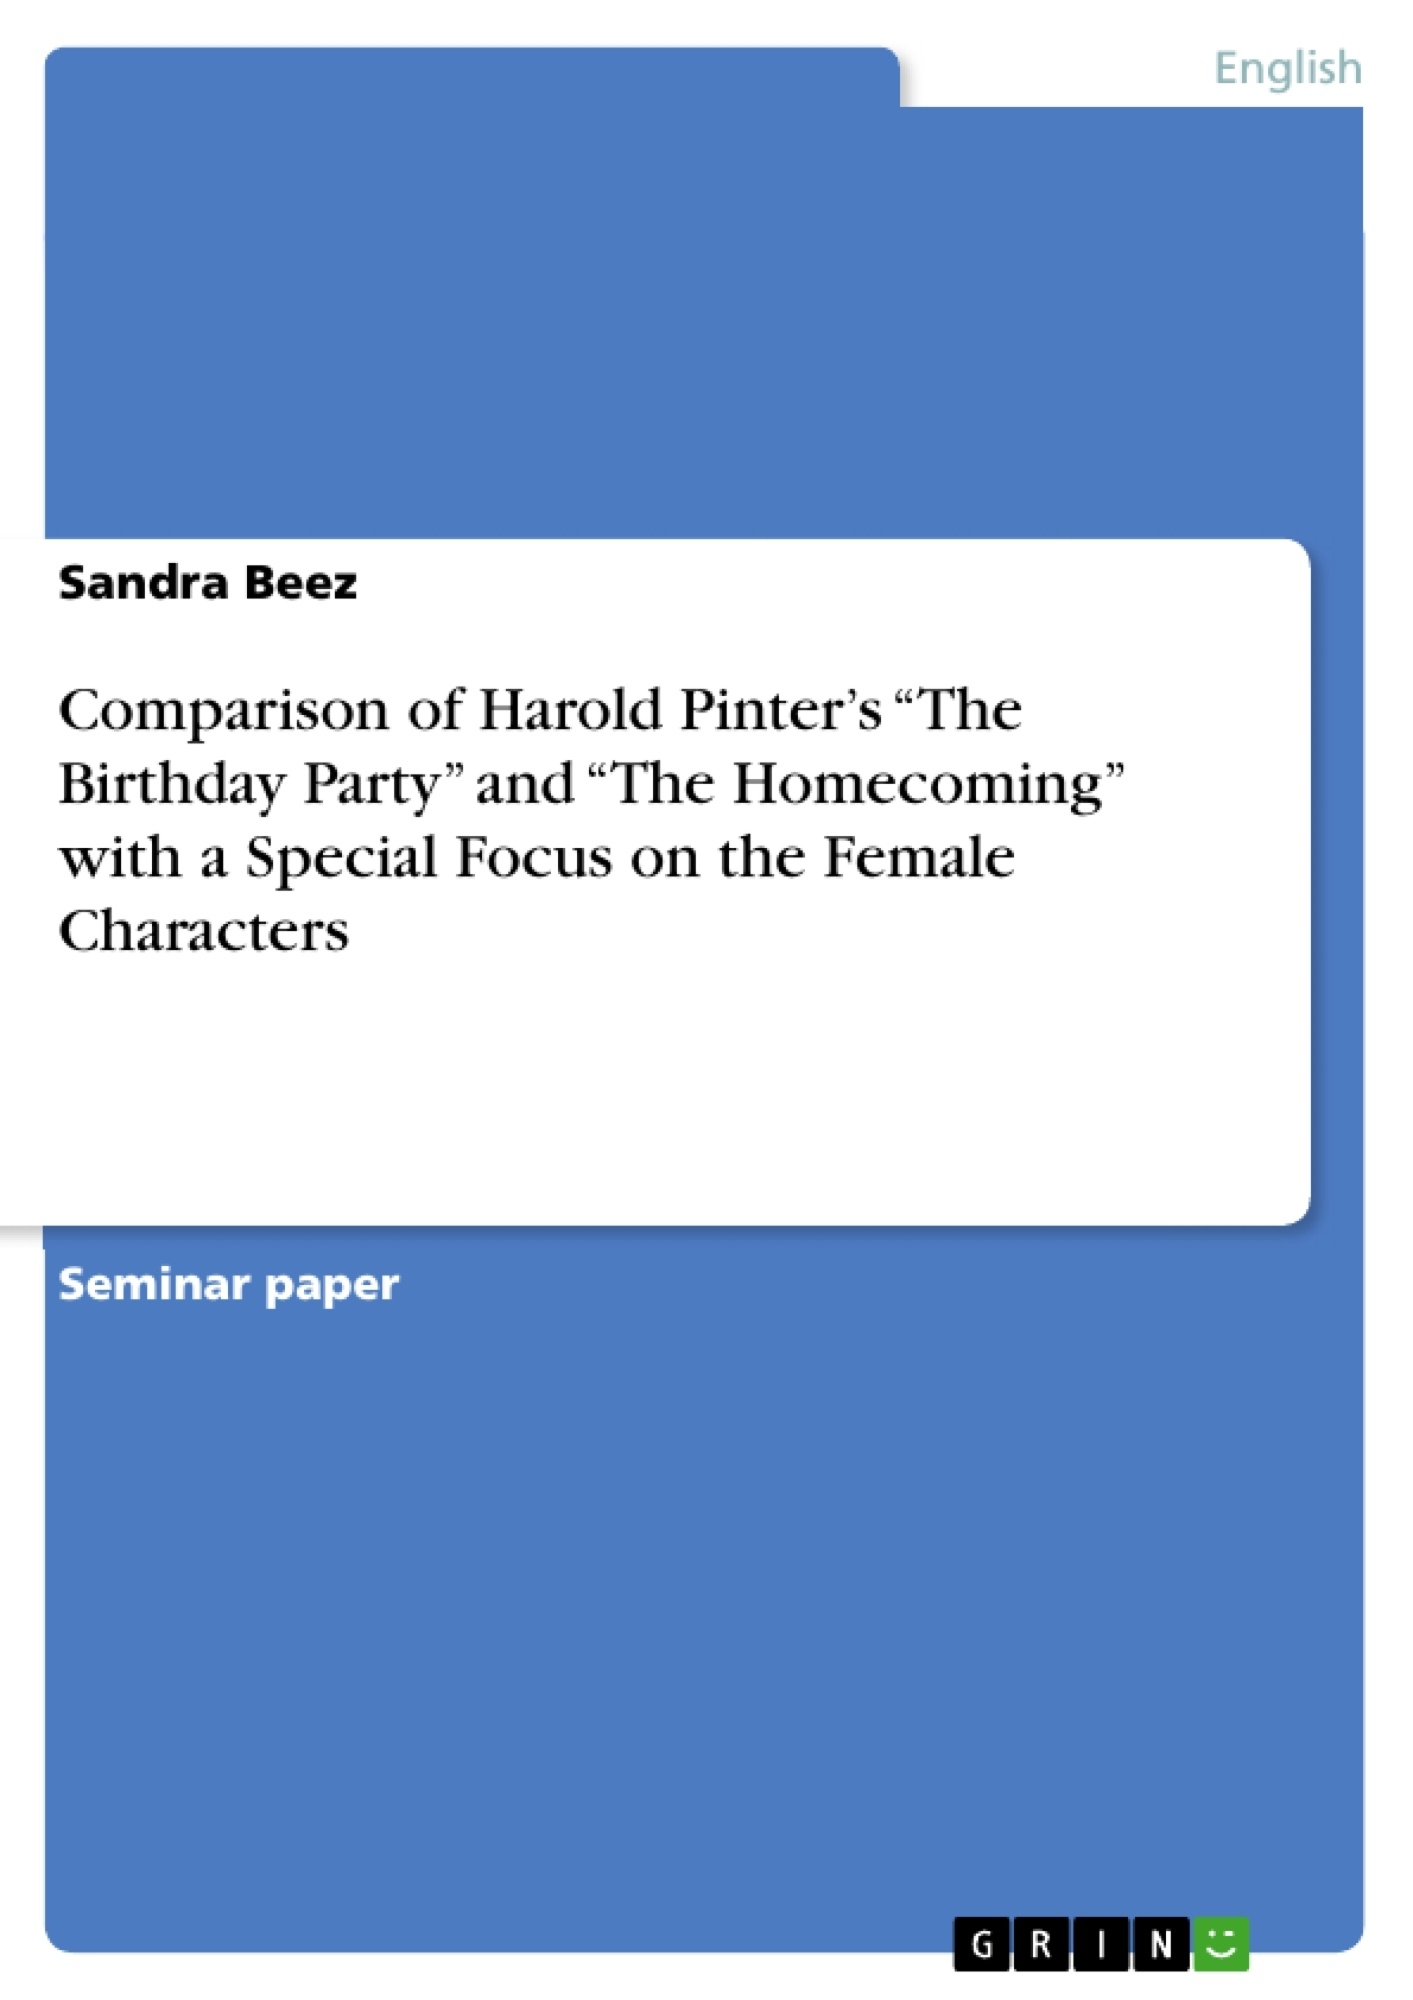 """Title: Comparison of Harold Pinter's """"The Birthday Party"""" and """"The Homecoming"""" with a Special Focus on the Female Characters"""